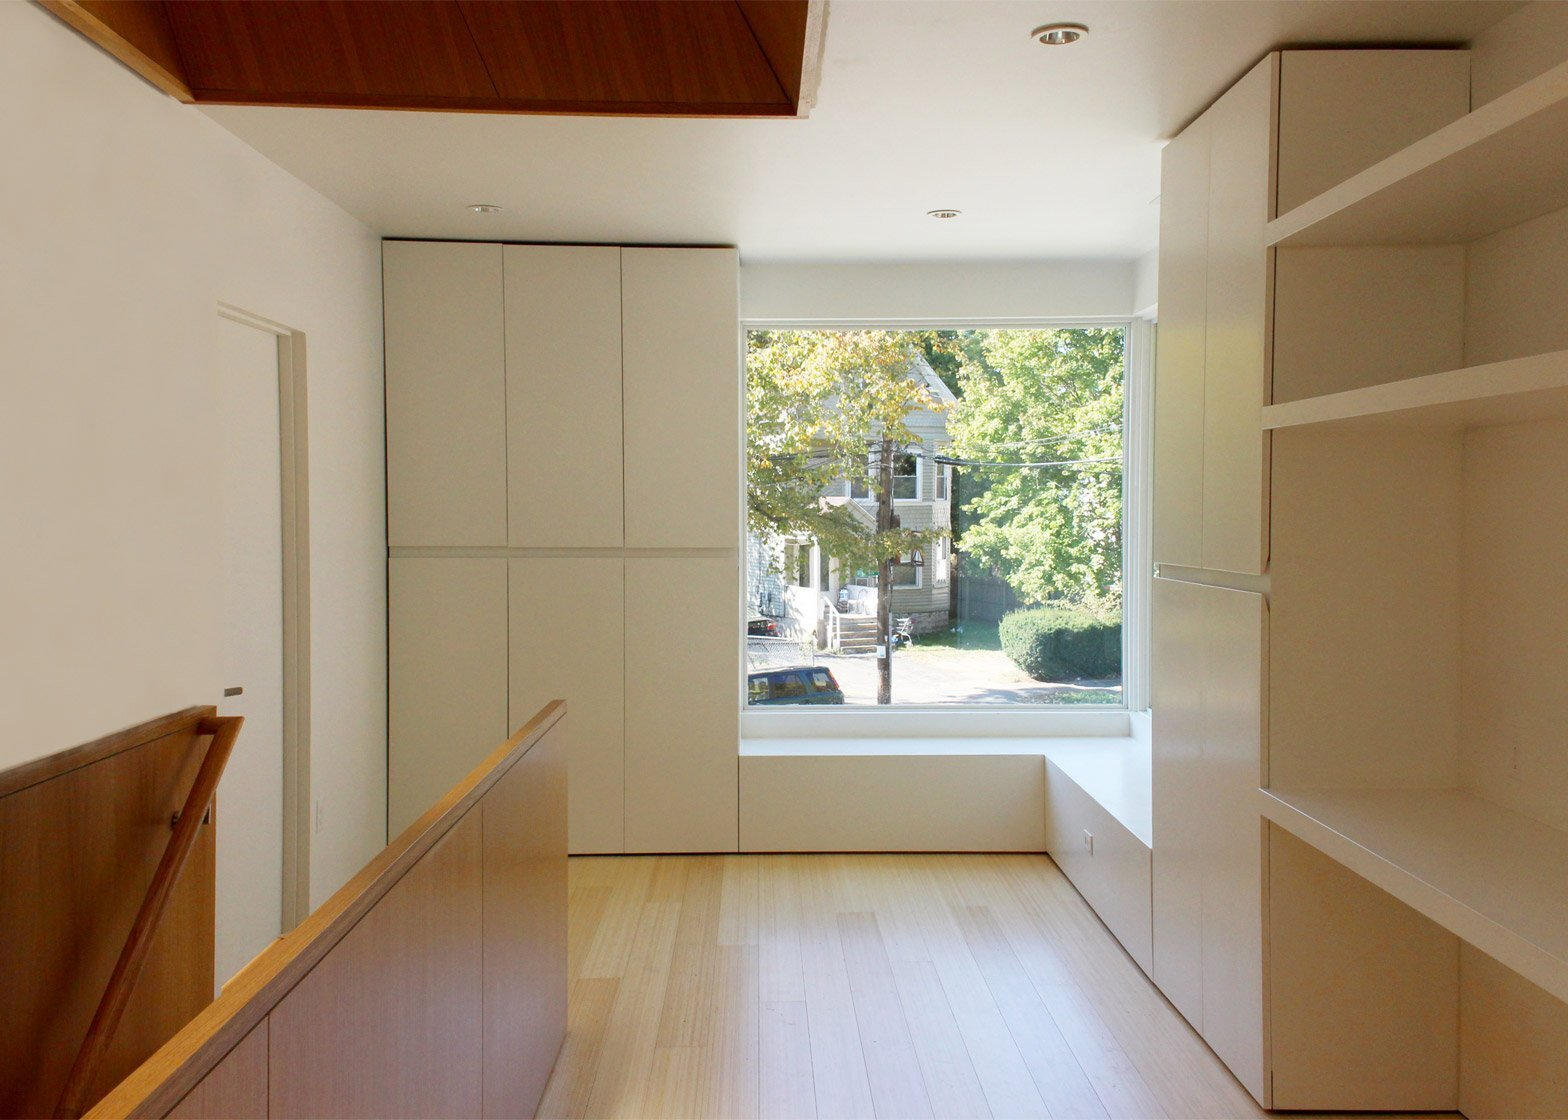 small house jim vlock building project yale school of architecture new haven - Home Designed